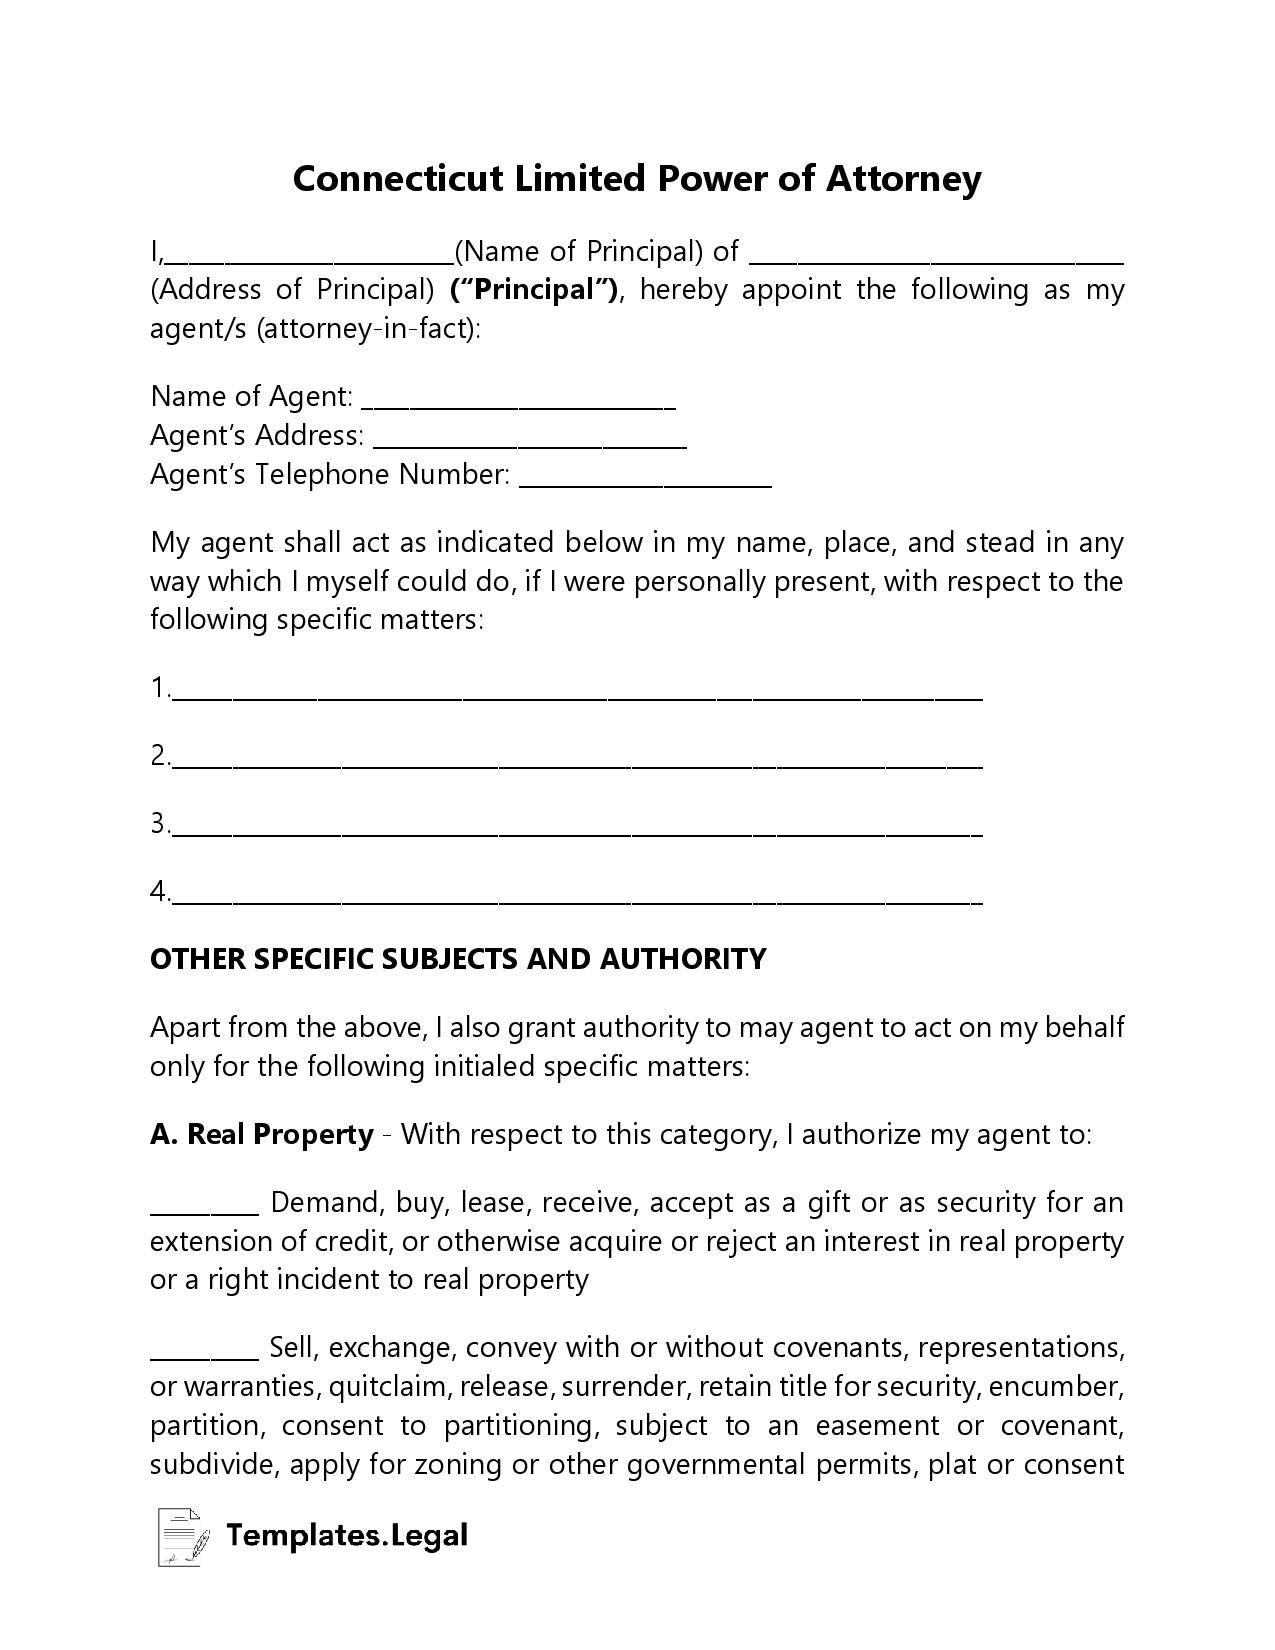 Connecticut Limited Power of Attorney - Templates.Legal